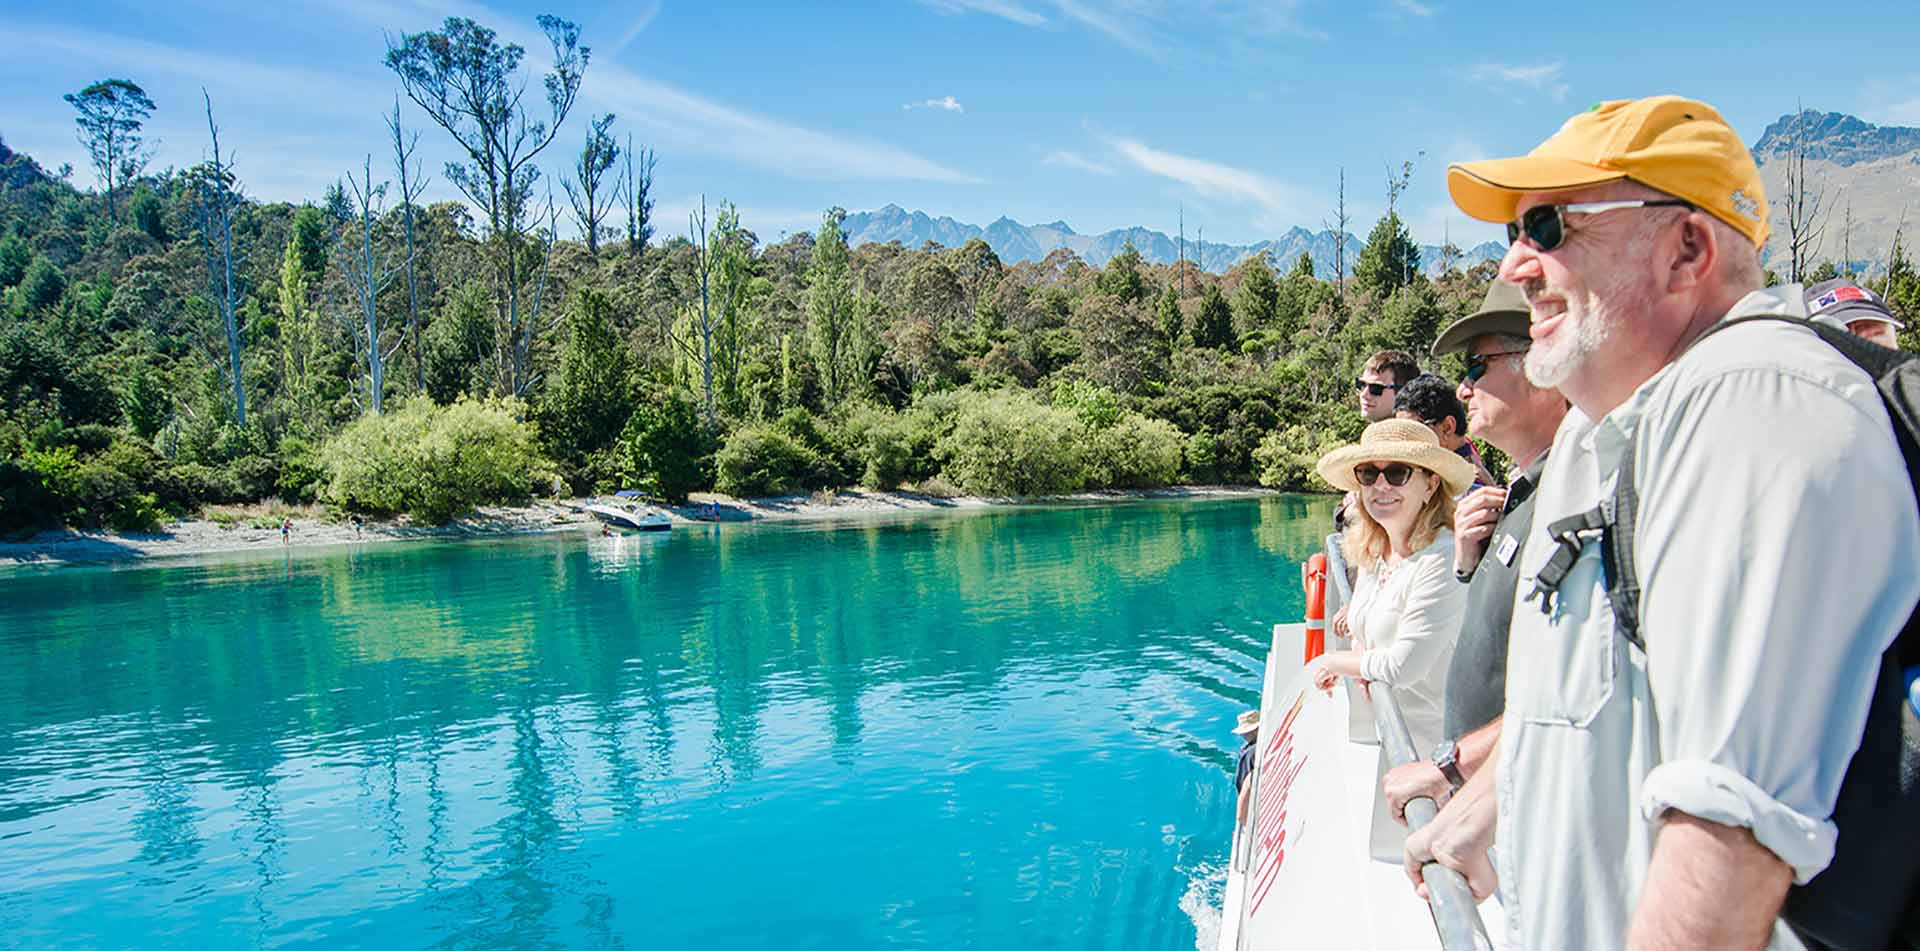 Oceania New Zealand Queenstown people on boat at Mt. Nicholas Farm - luxury vacation destinations